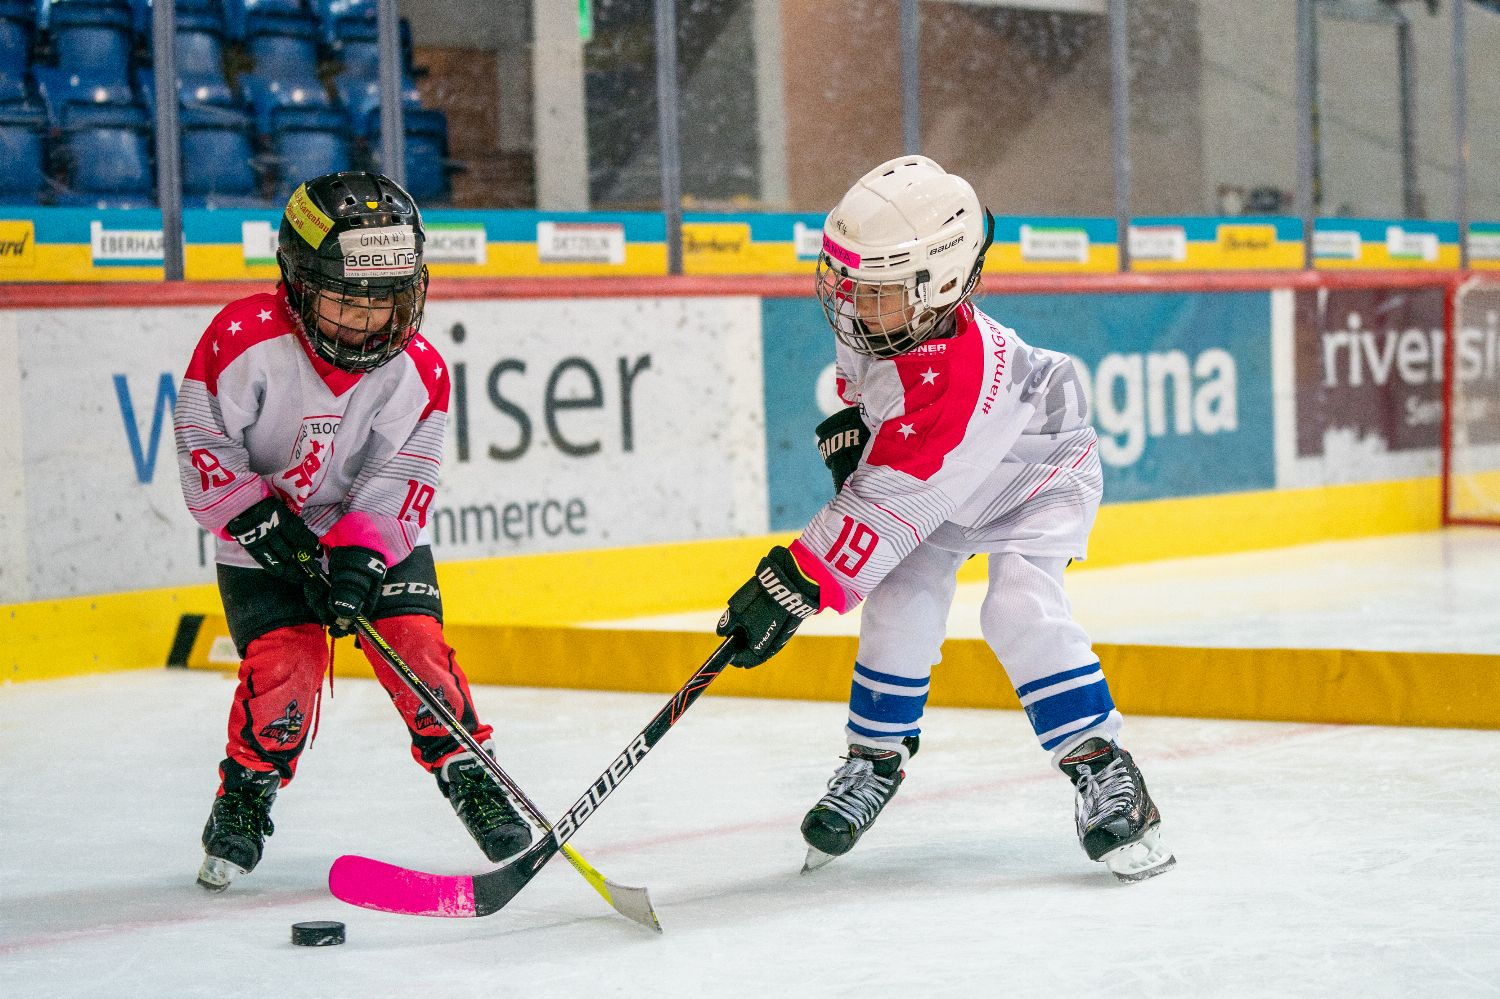 Girls' Hockey Day - <?php echo Kloten; ?>